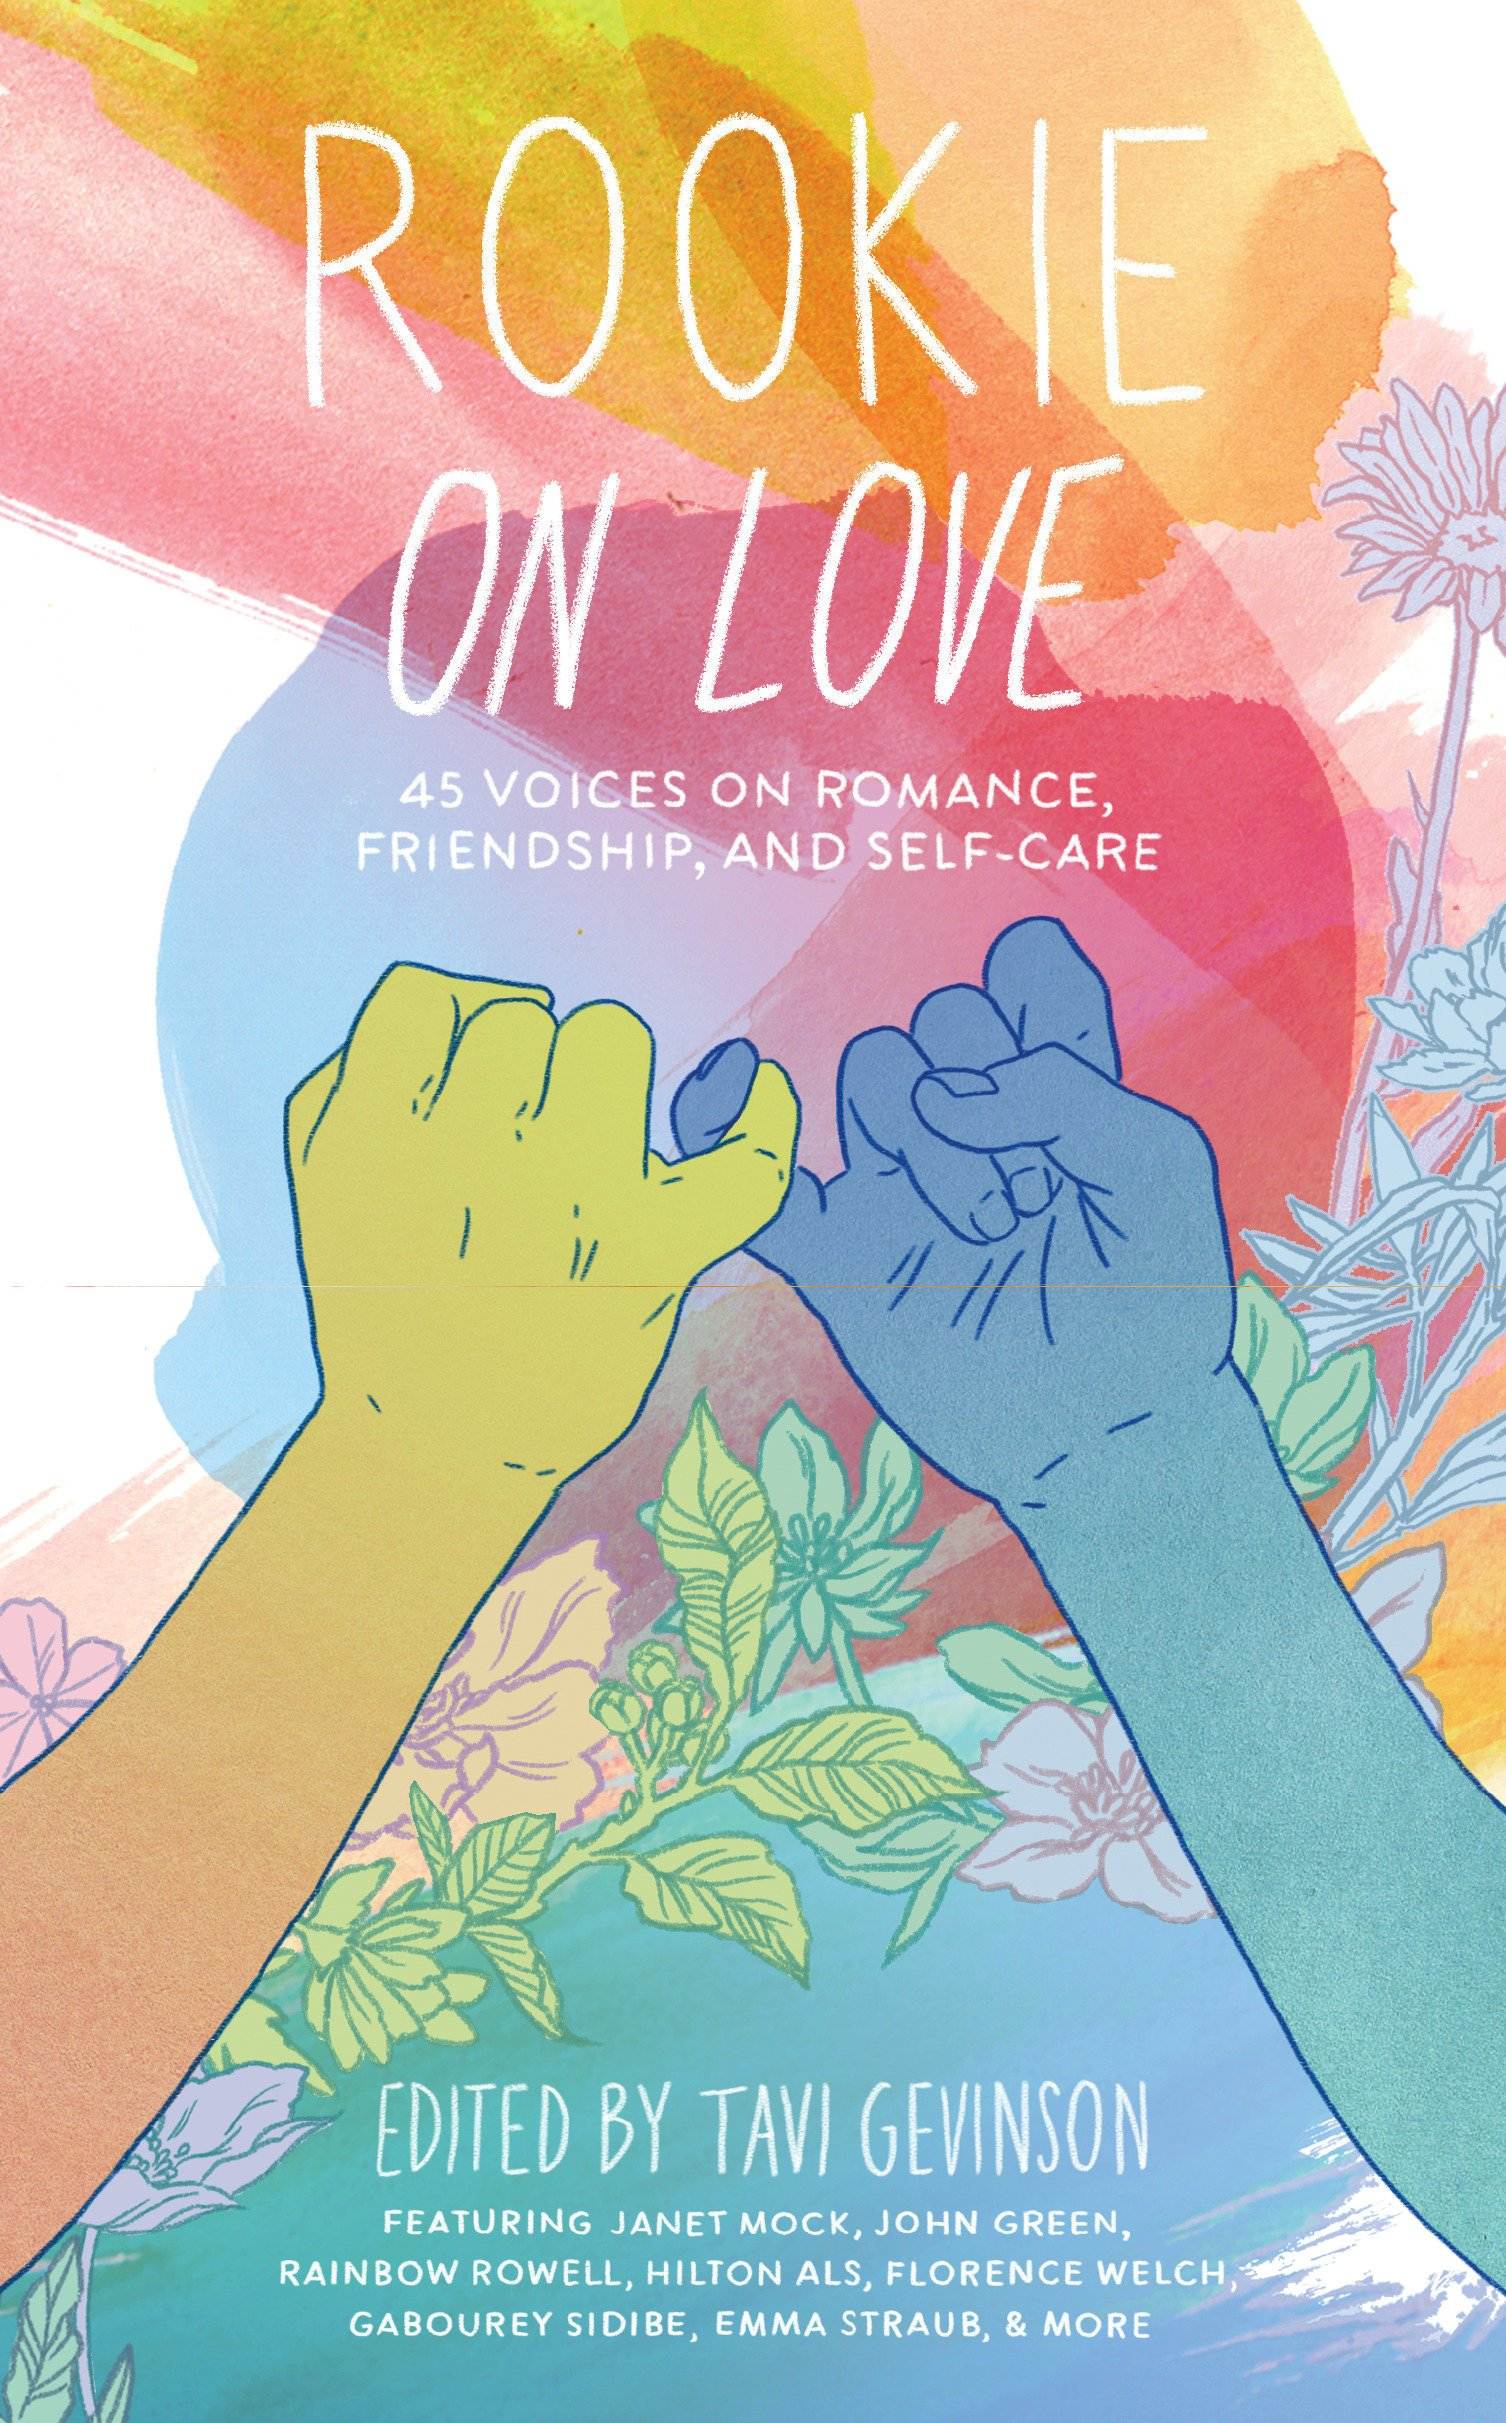 Rookie on love : 45 voices on romance, friendship, and self-care / edited by Tavi Gevinson